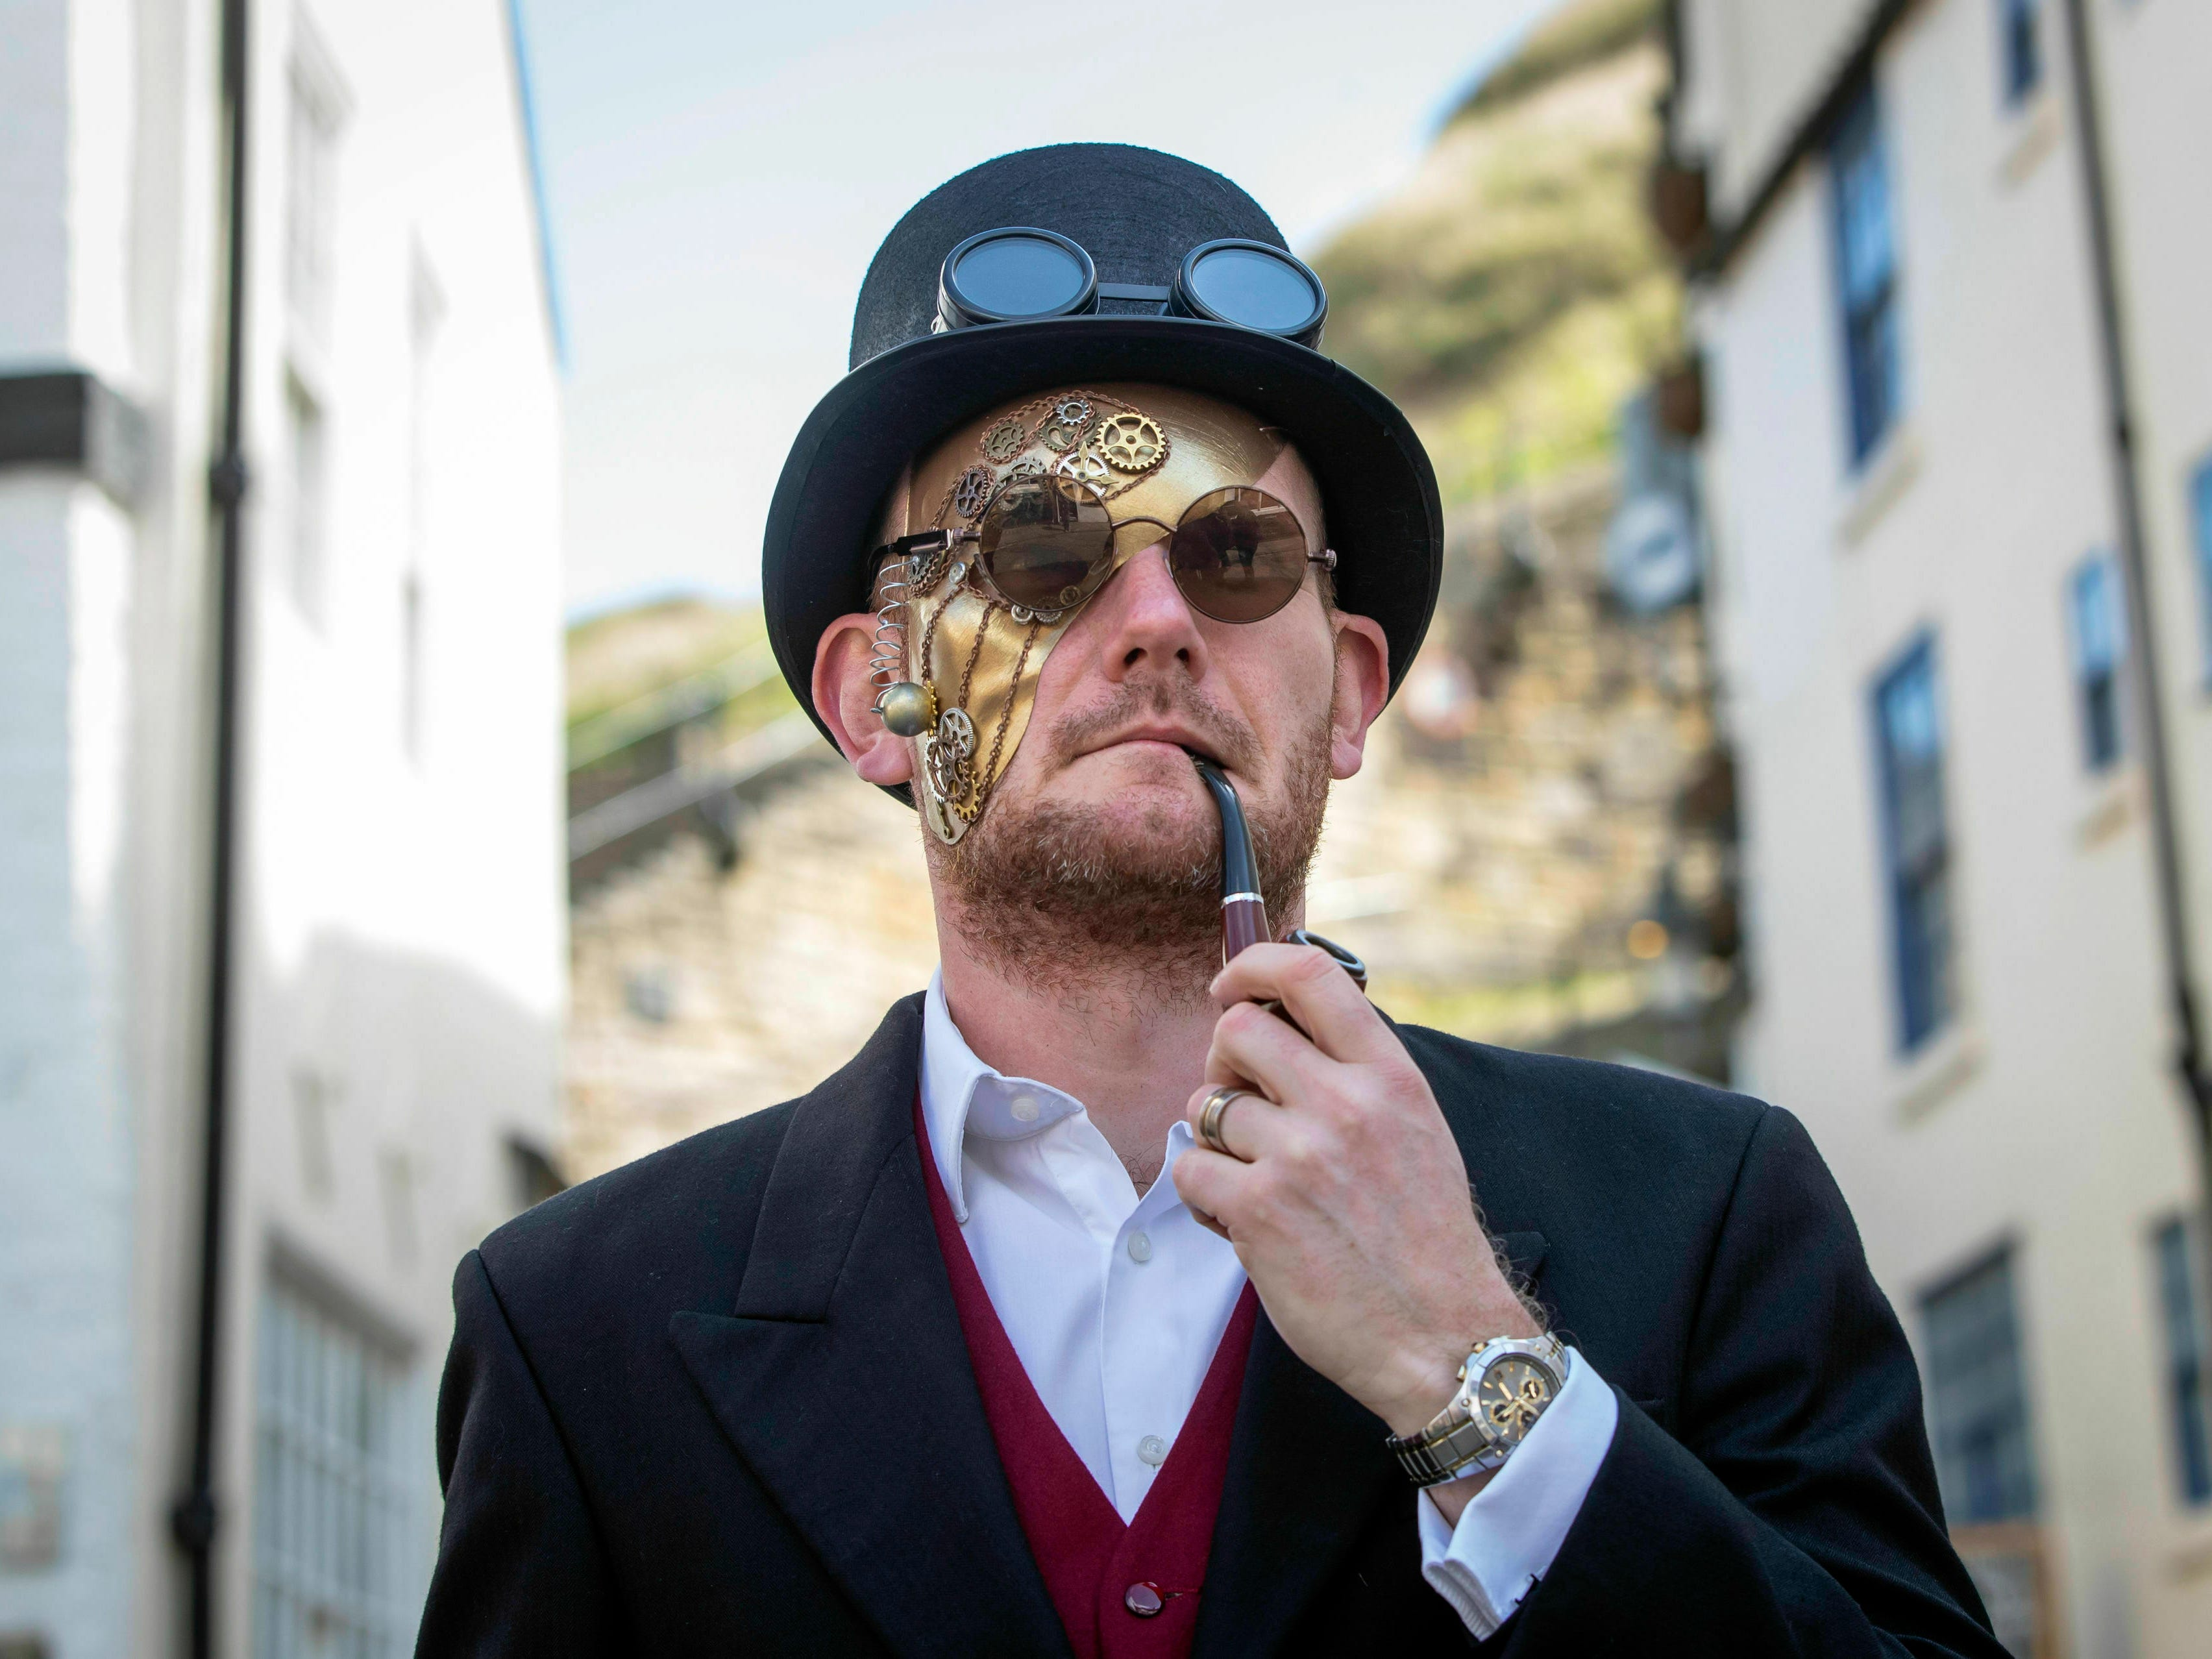 A man attends the Whitby Goth Weekend in Whitby, north England, Friday April 12, 2019, where Bram Stoker reputedly found some of his inspiration for the 'Dracula' story after staying in the town in 1890. The Whitby Goth Weekend is a twice-yearly alternative music festival which has grown to be one of the world's most popular goth events attracting attendees from across the globe.